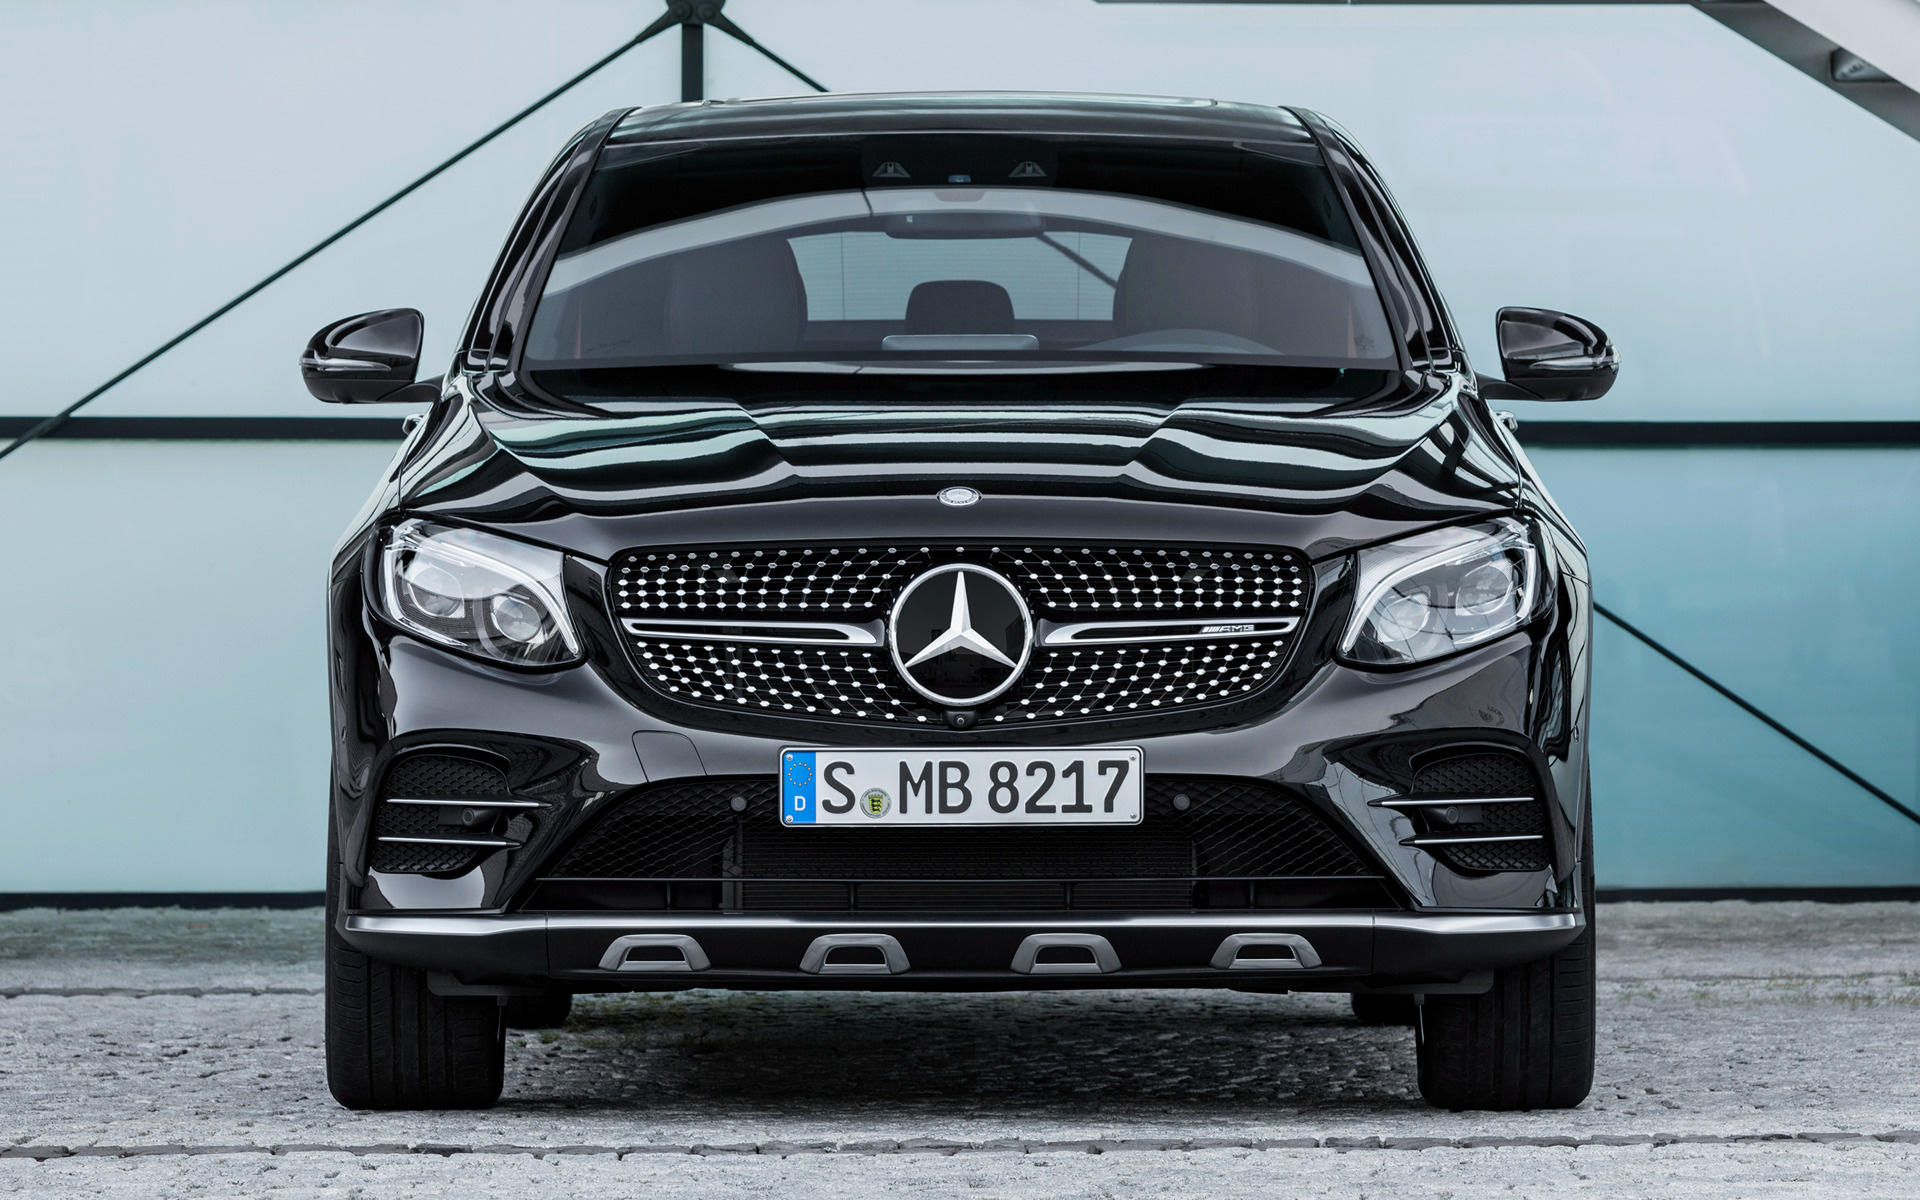 Mercedes benz glc 350 d coupe amg line 2016 wallpapers and hd images -  Mercedes Amg Glc 43 Coupe 2016 Wallpapers And Hd Images Car Pixel Mercedes Benz